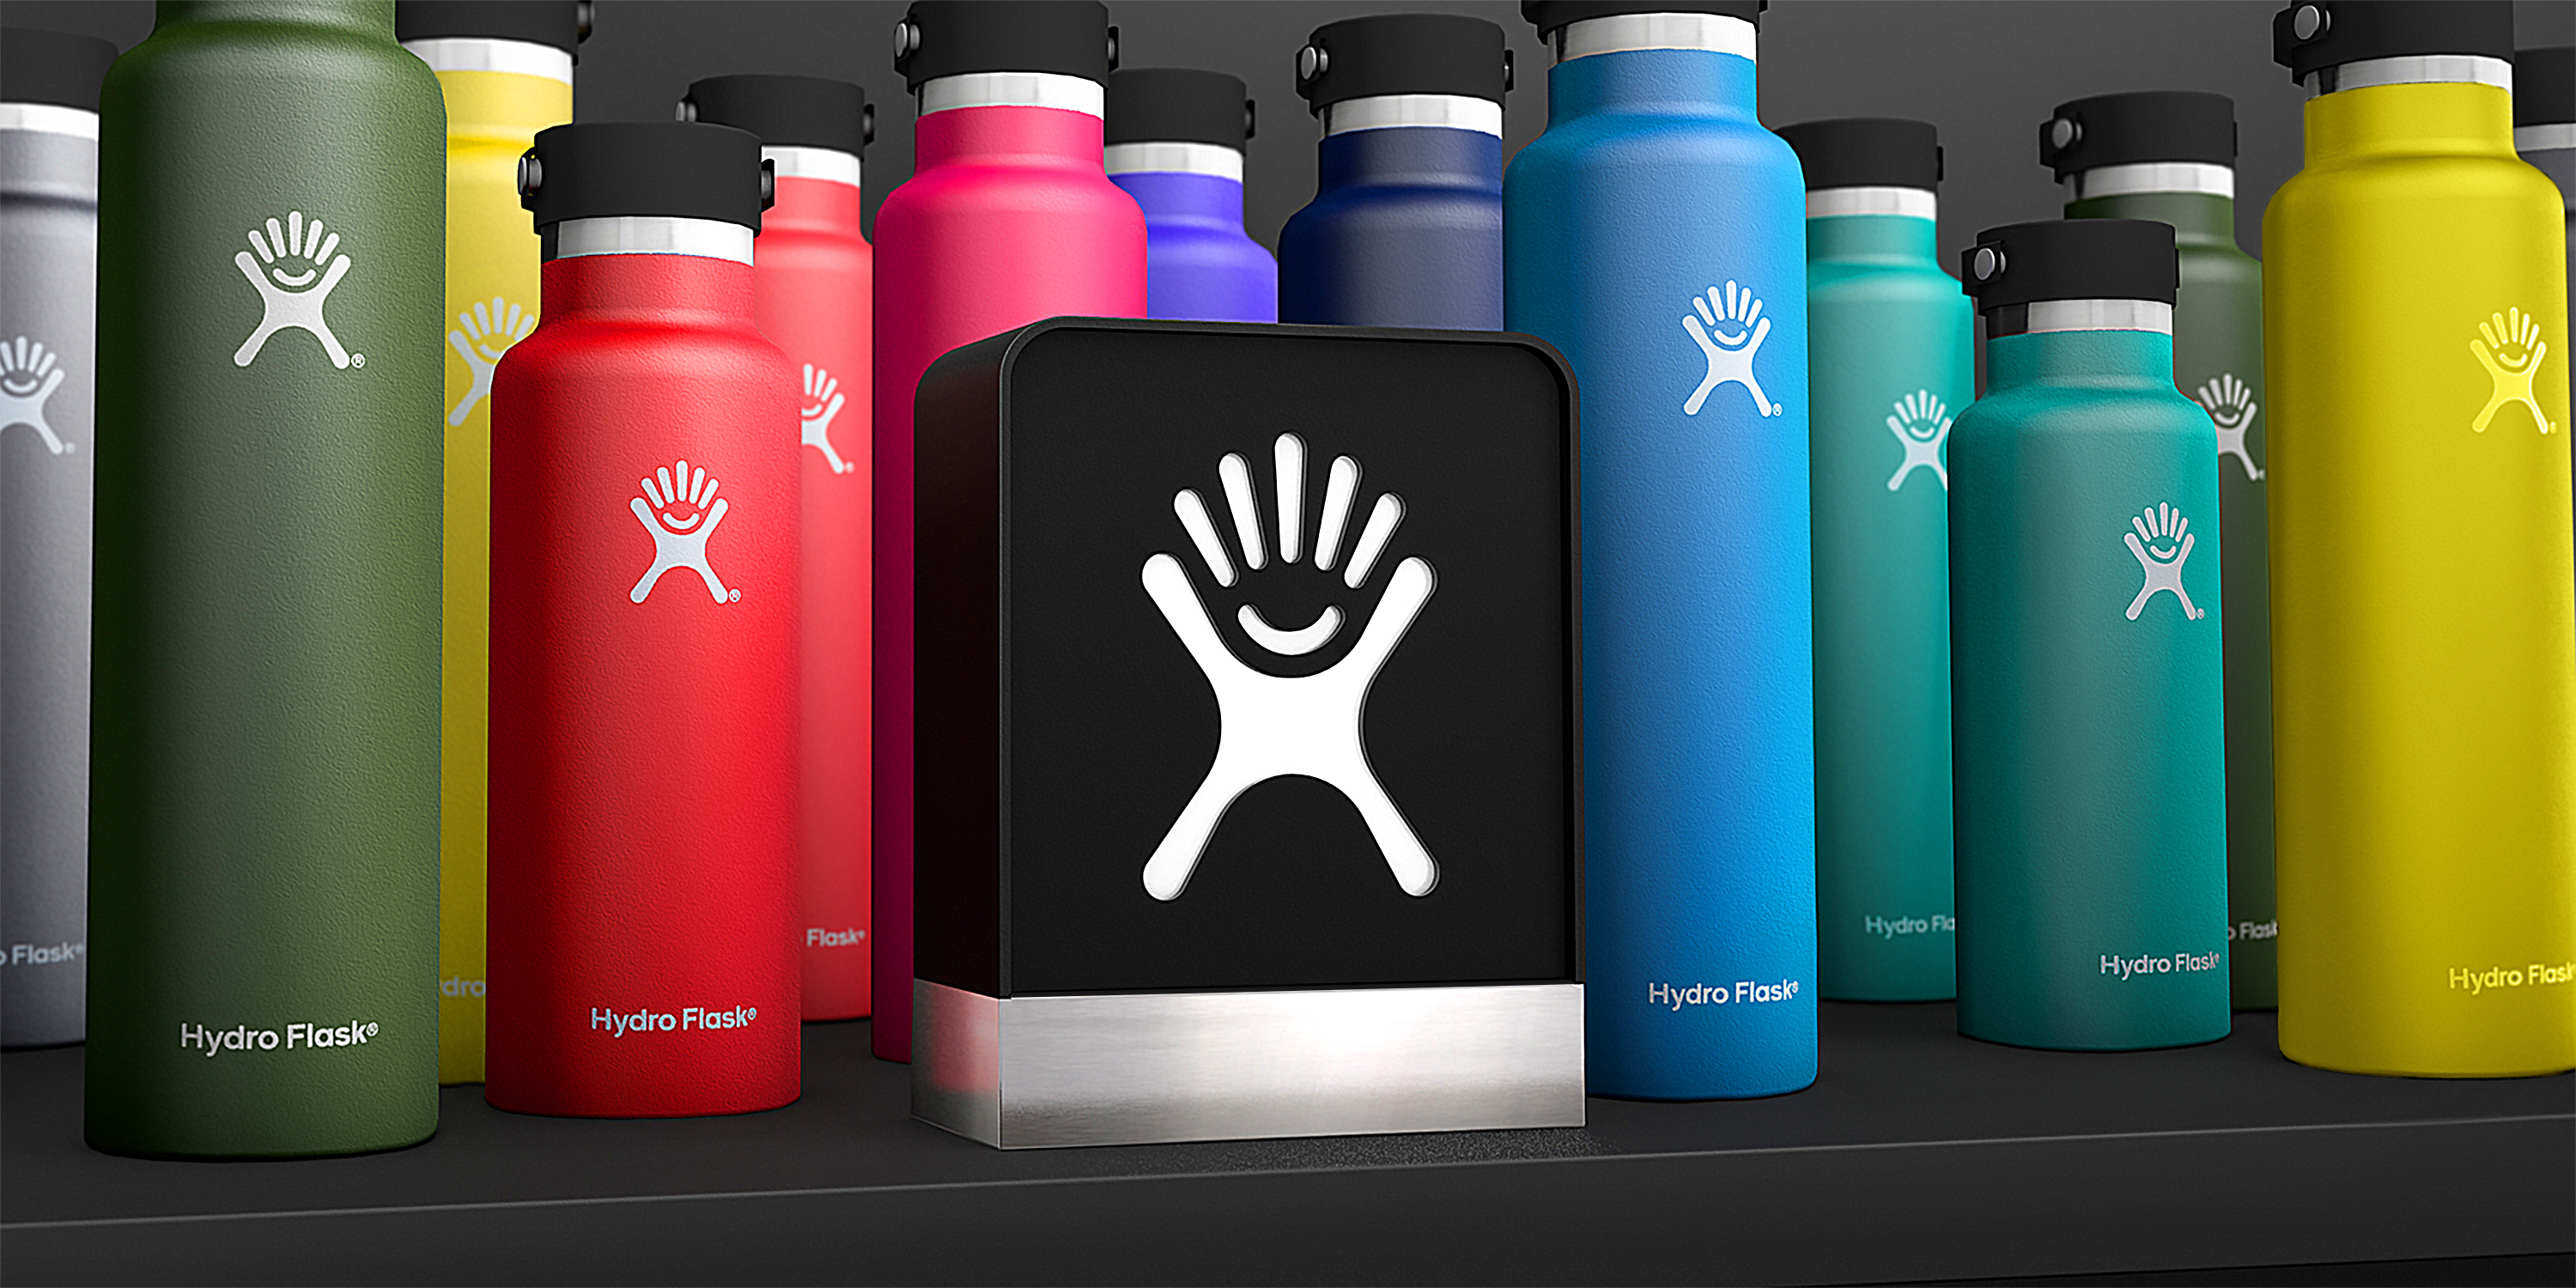 Multiple hydro flask bottles presented in different colors.